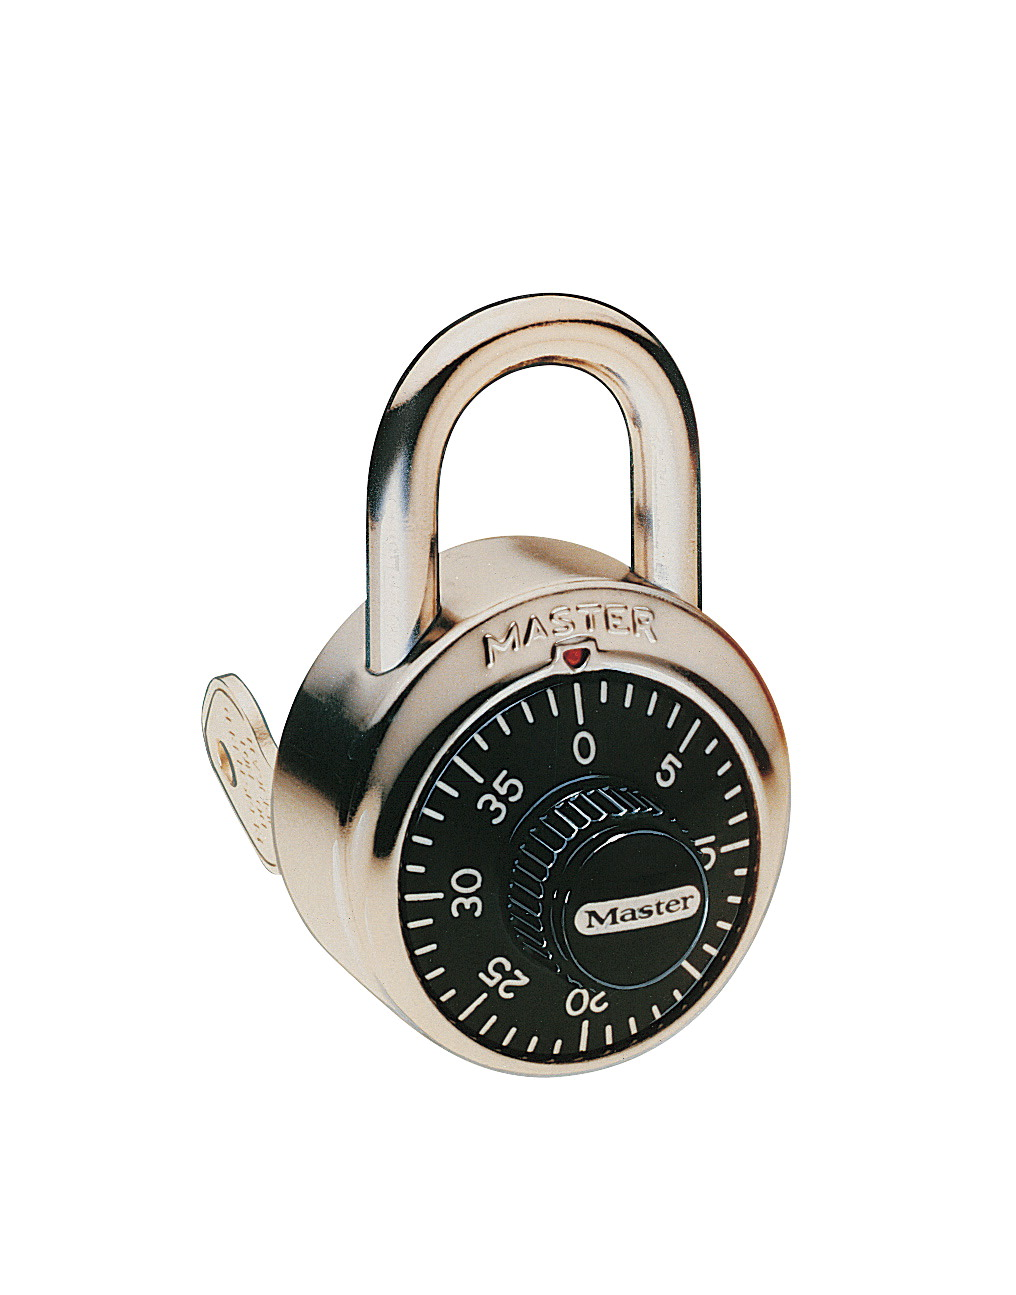 bbc6fa9a7e8e Master Lock Key Controlled Combination Padlock 1525, Various Options